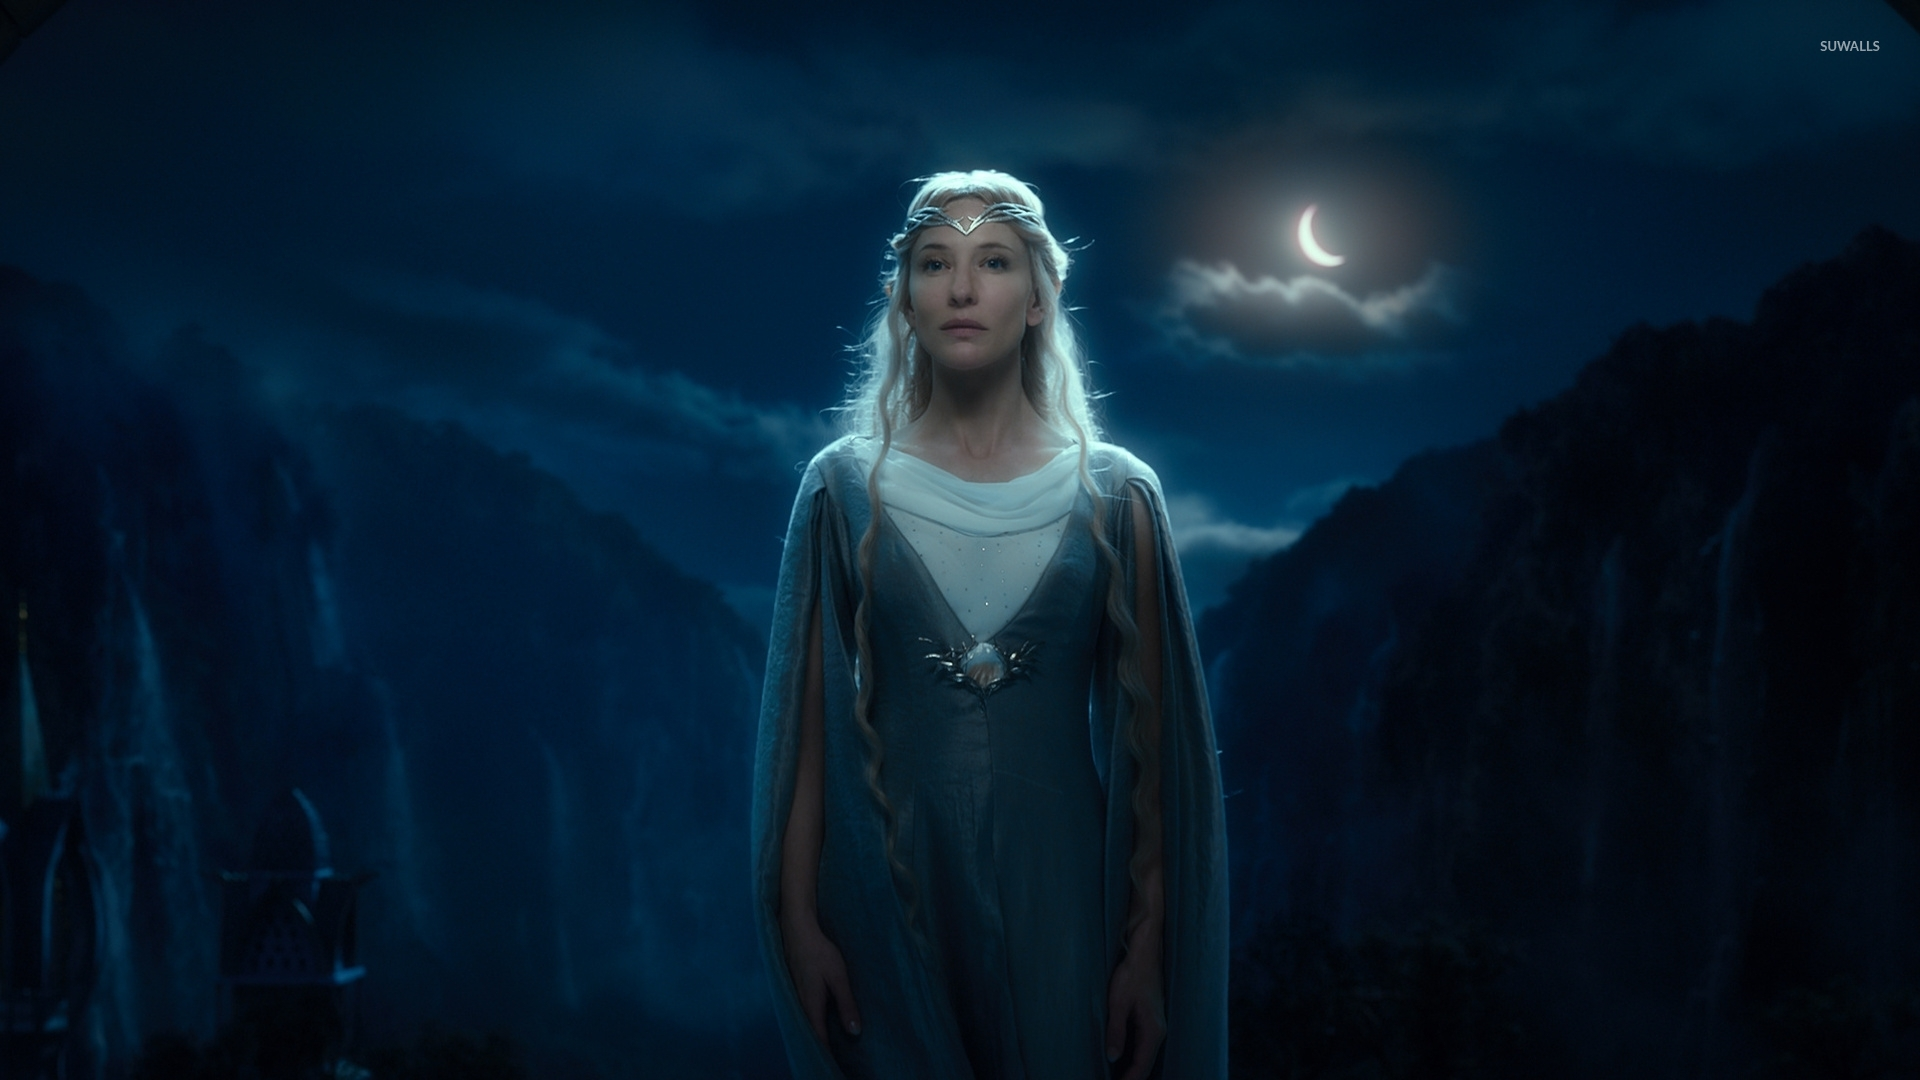 Galadriel in The Hobbit An Unexpected Journey wallpaper   Movie 1920x1080